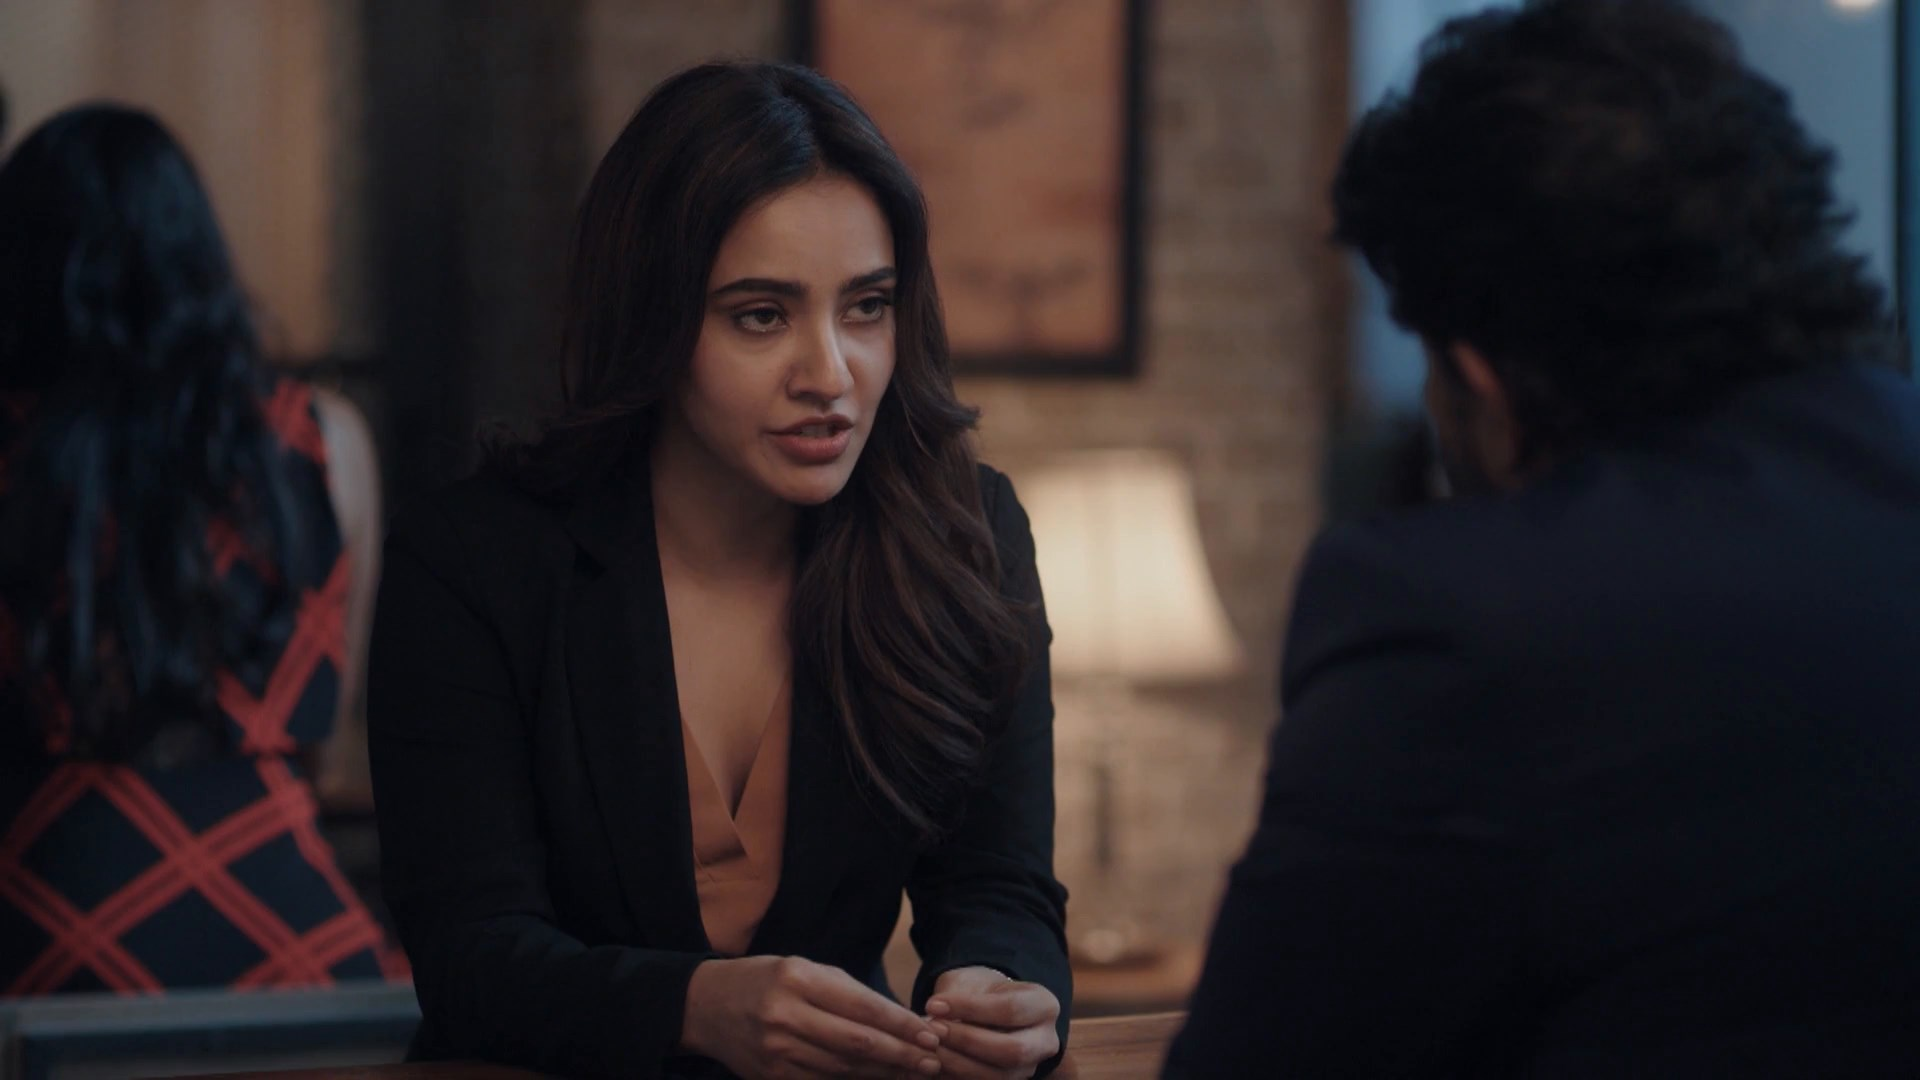 Illegal165f66d - Illegal 2020 Hindi S01 Voot Select Complete Web Series 480p HDRip 900MB x264 AAC